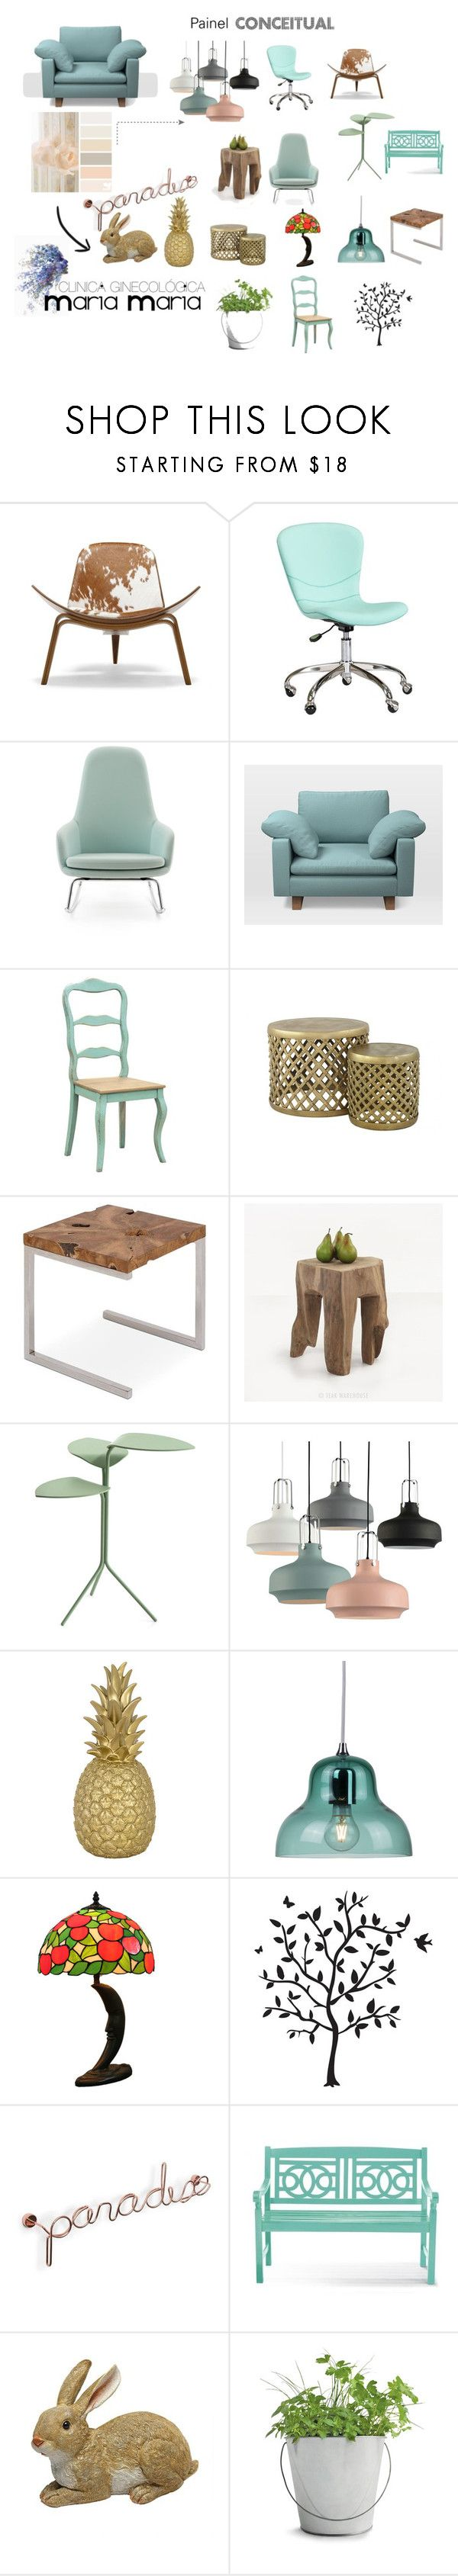 """VERDE MENTA"" by lorena-jacob on Polyvore featuring interior, interiors, interior design, casa, home decor, interior decorating, Design Within Reach, PBteen, Normann Copenhagen e West Elm"